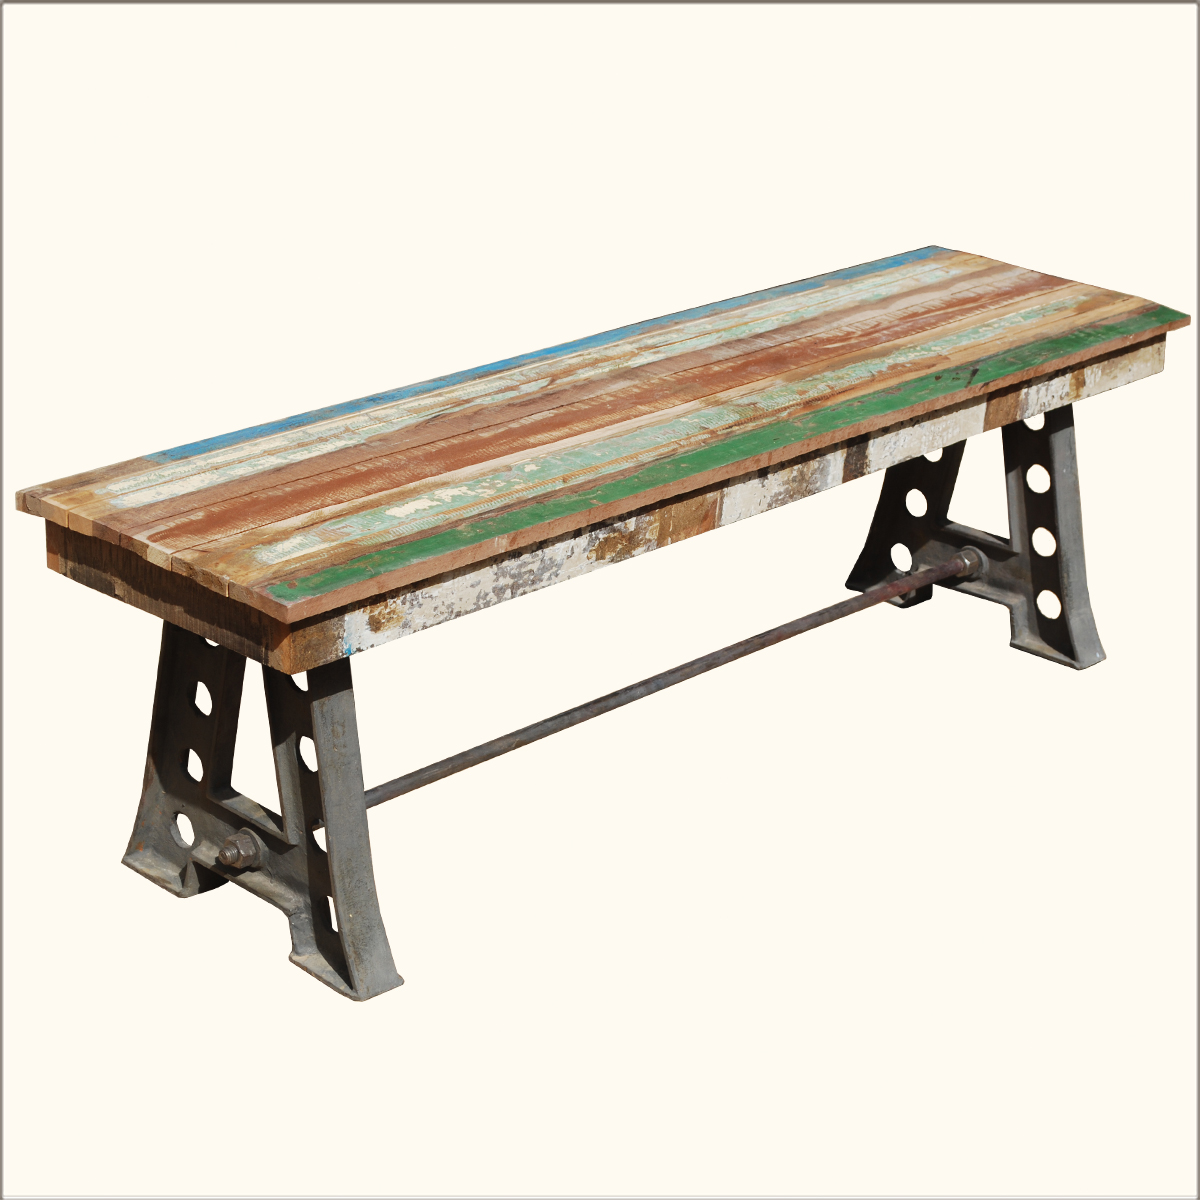 Rustic Solid Teak Wood Industrial Wrought Iron Bench Outdoor Patio Furniture Ebay